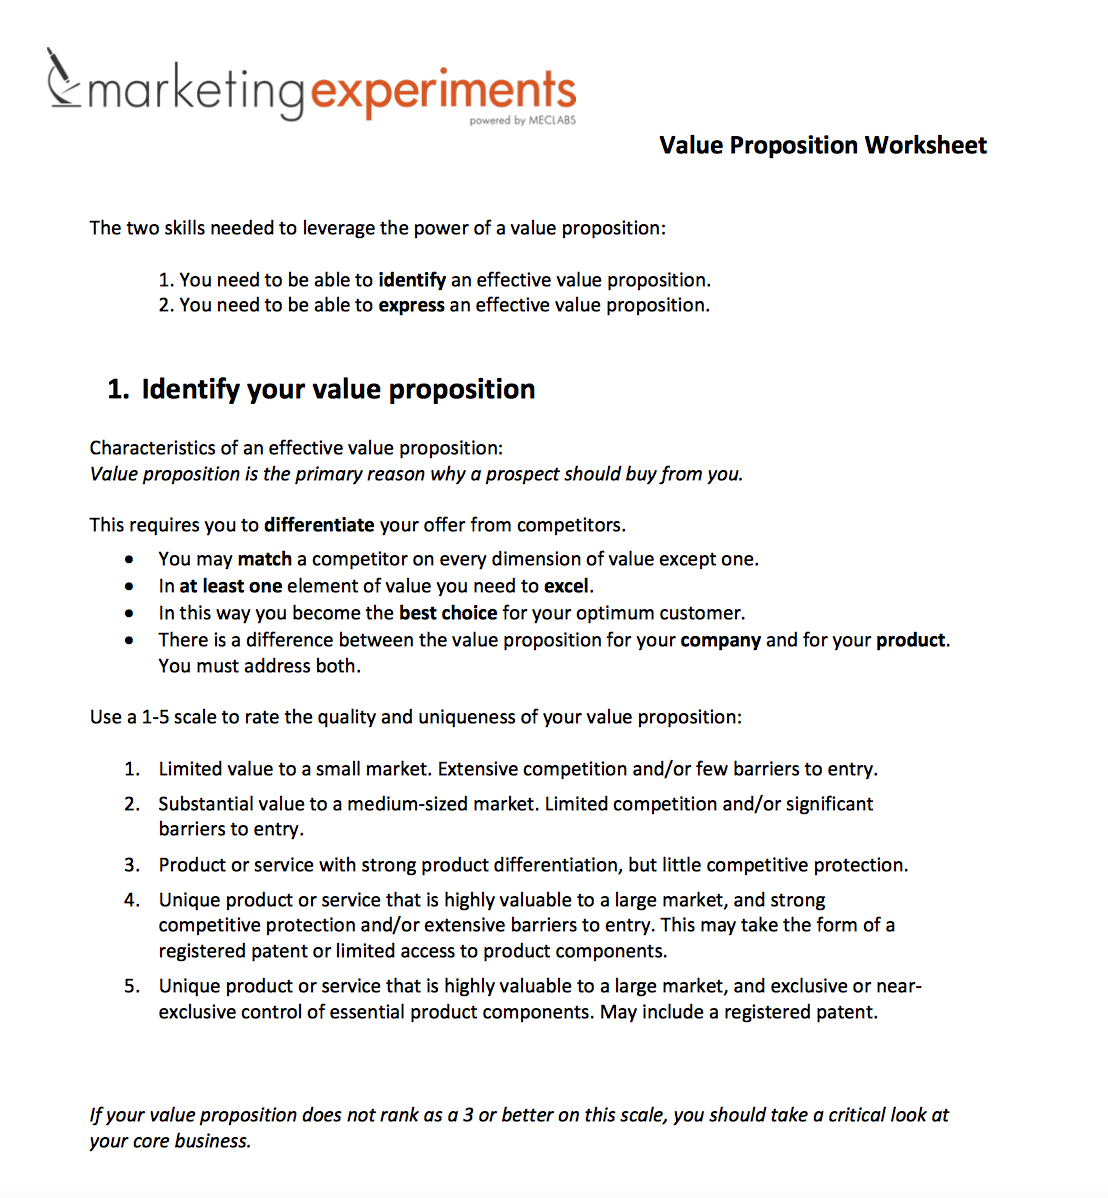 Value Proposition Worksheet The Two Skills Needed To